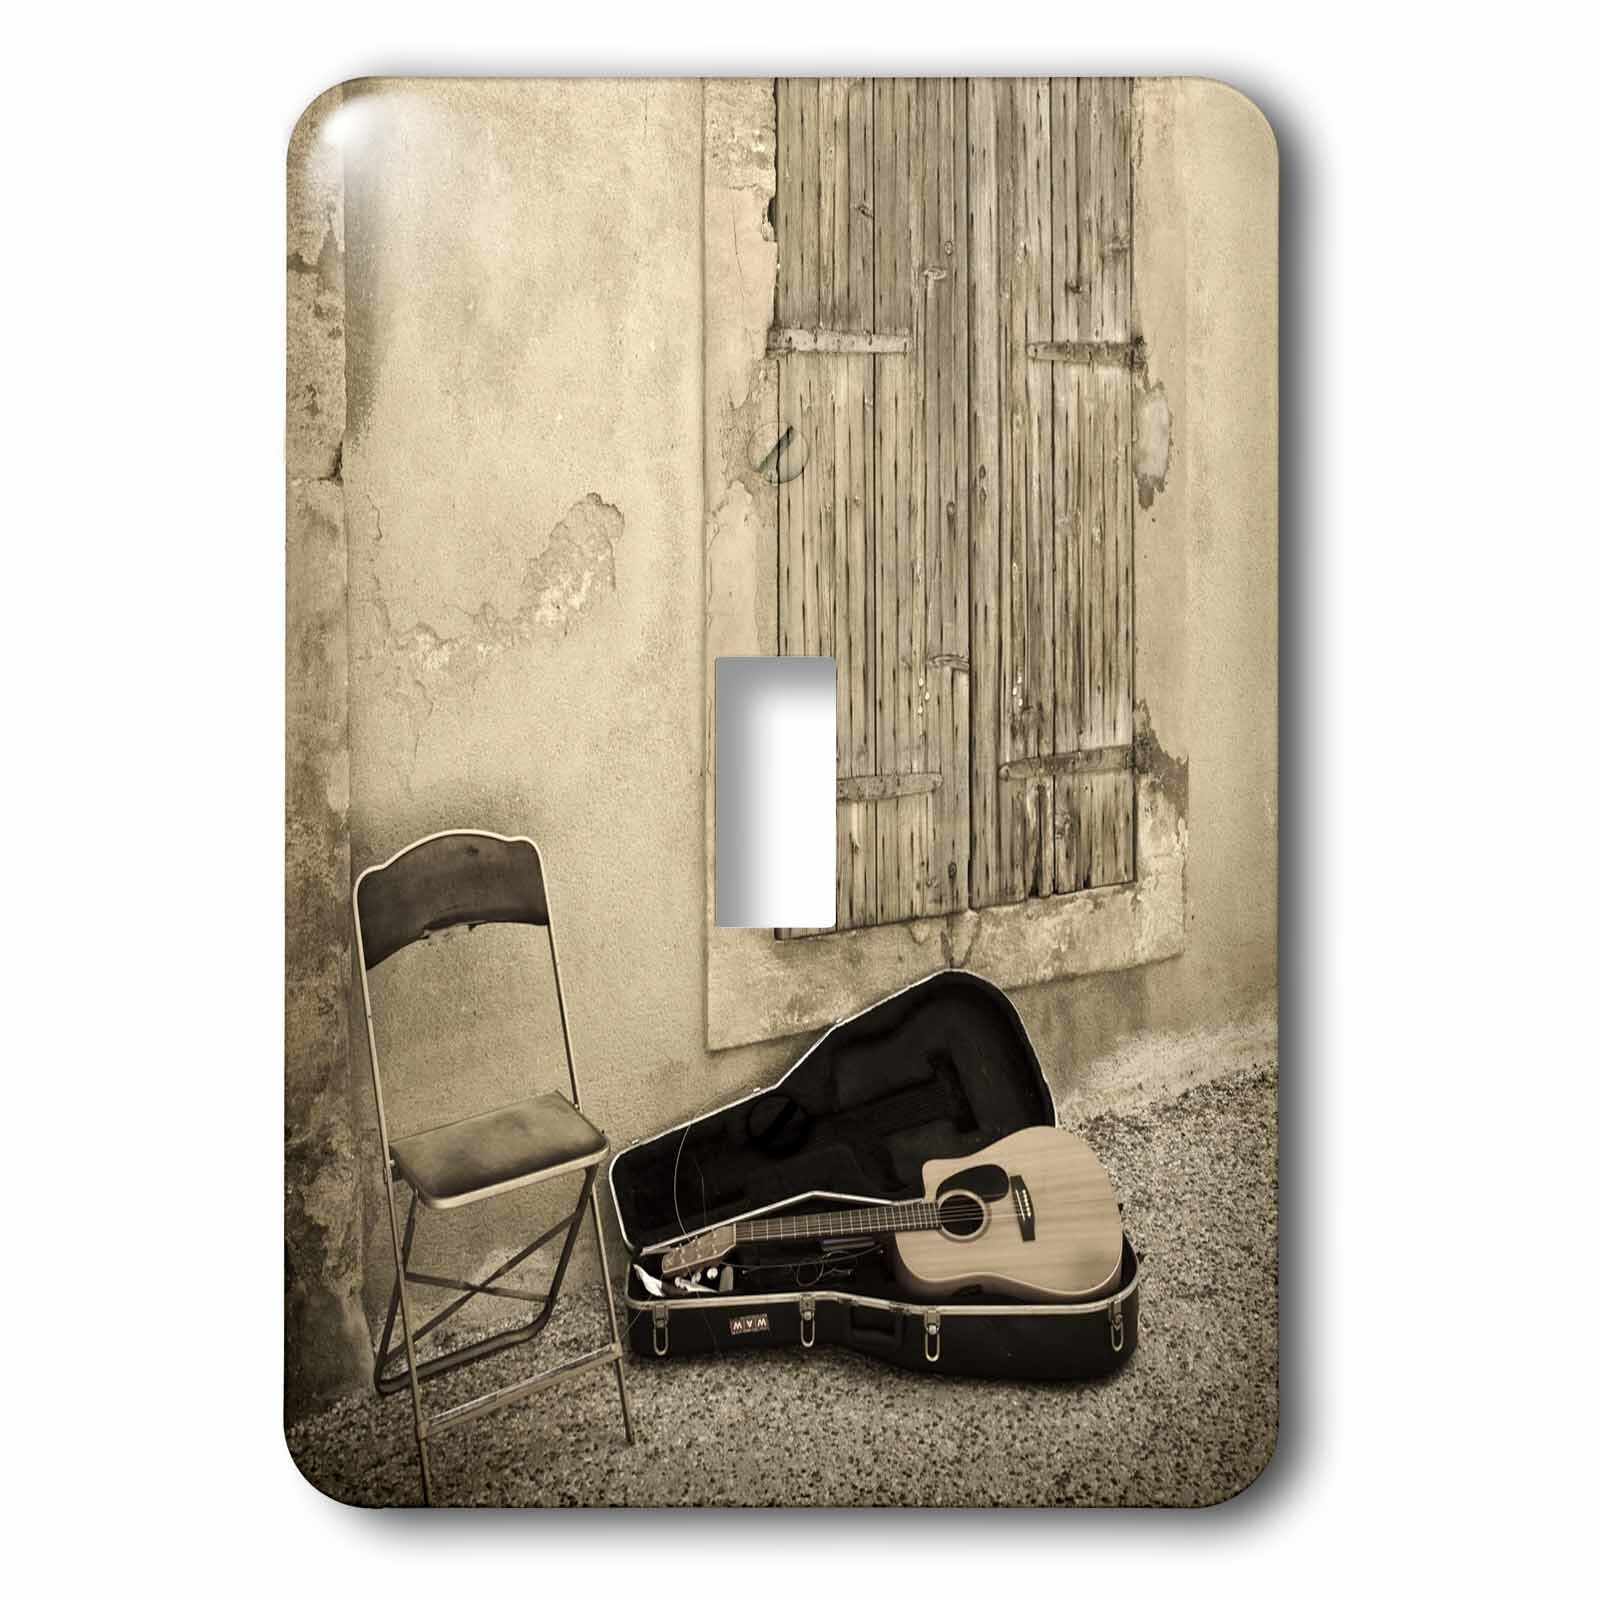 3drose Still Life With Guitar Village Window France 1 Gang Toggle Light Switch Wall Plate Wayfair